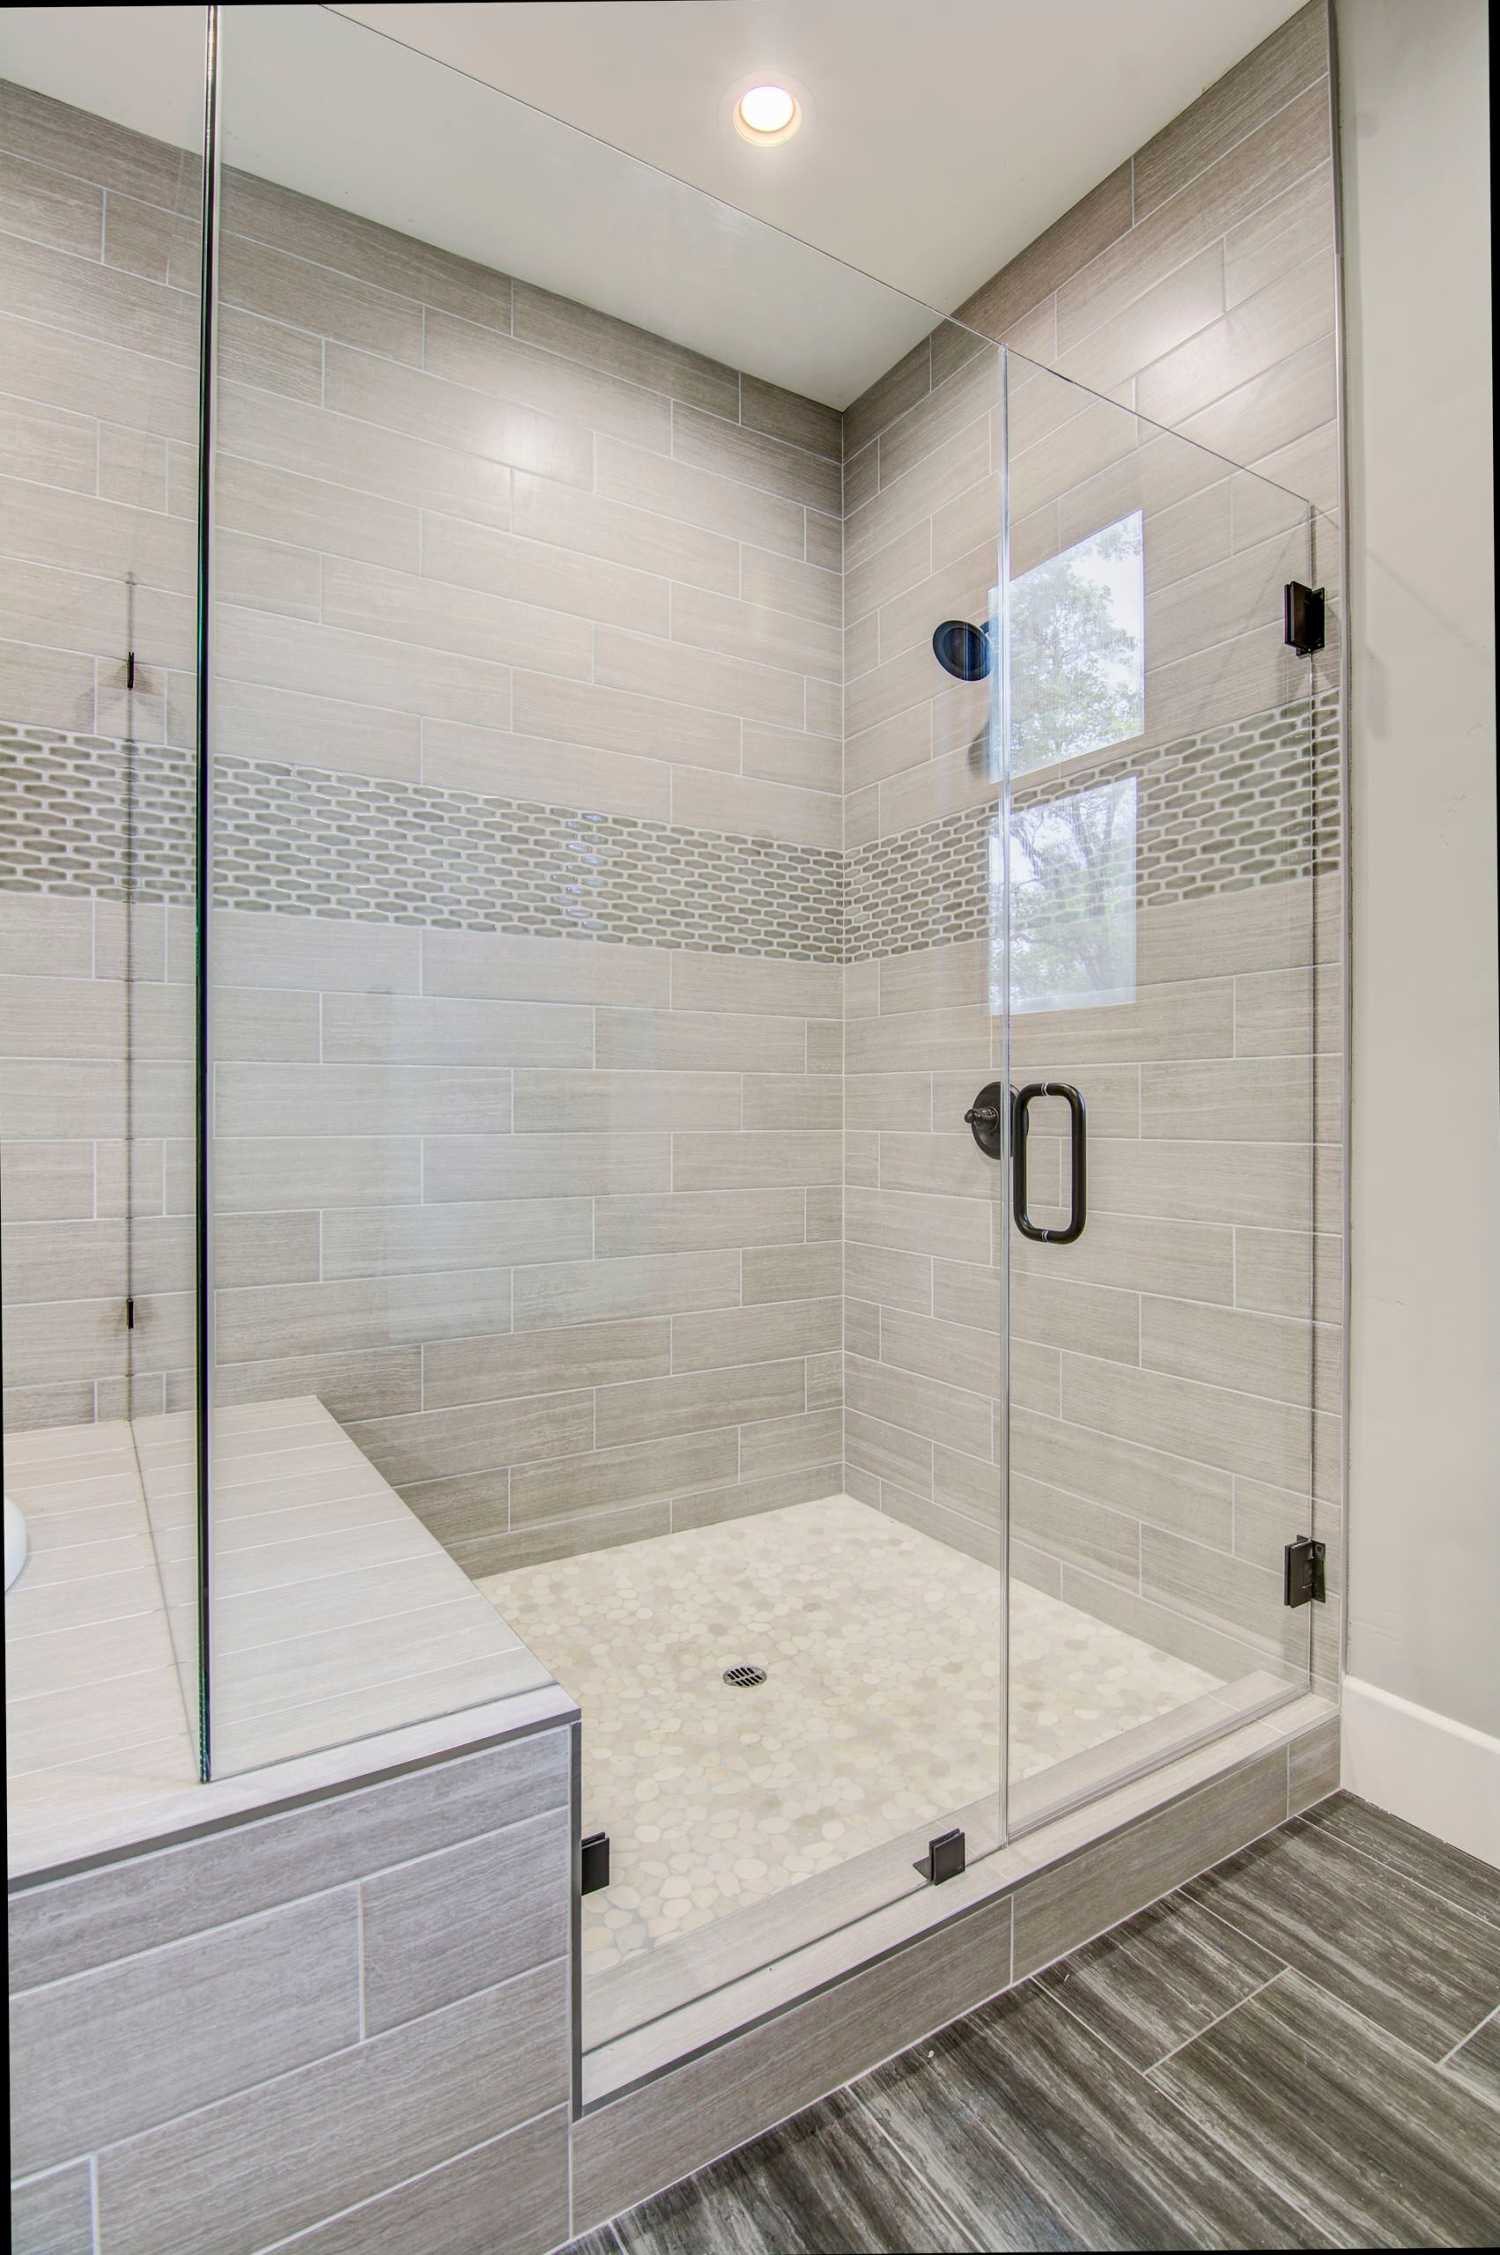 Blissful Baths: Shower Remodeling Ideas for a Beautiful Bathroom